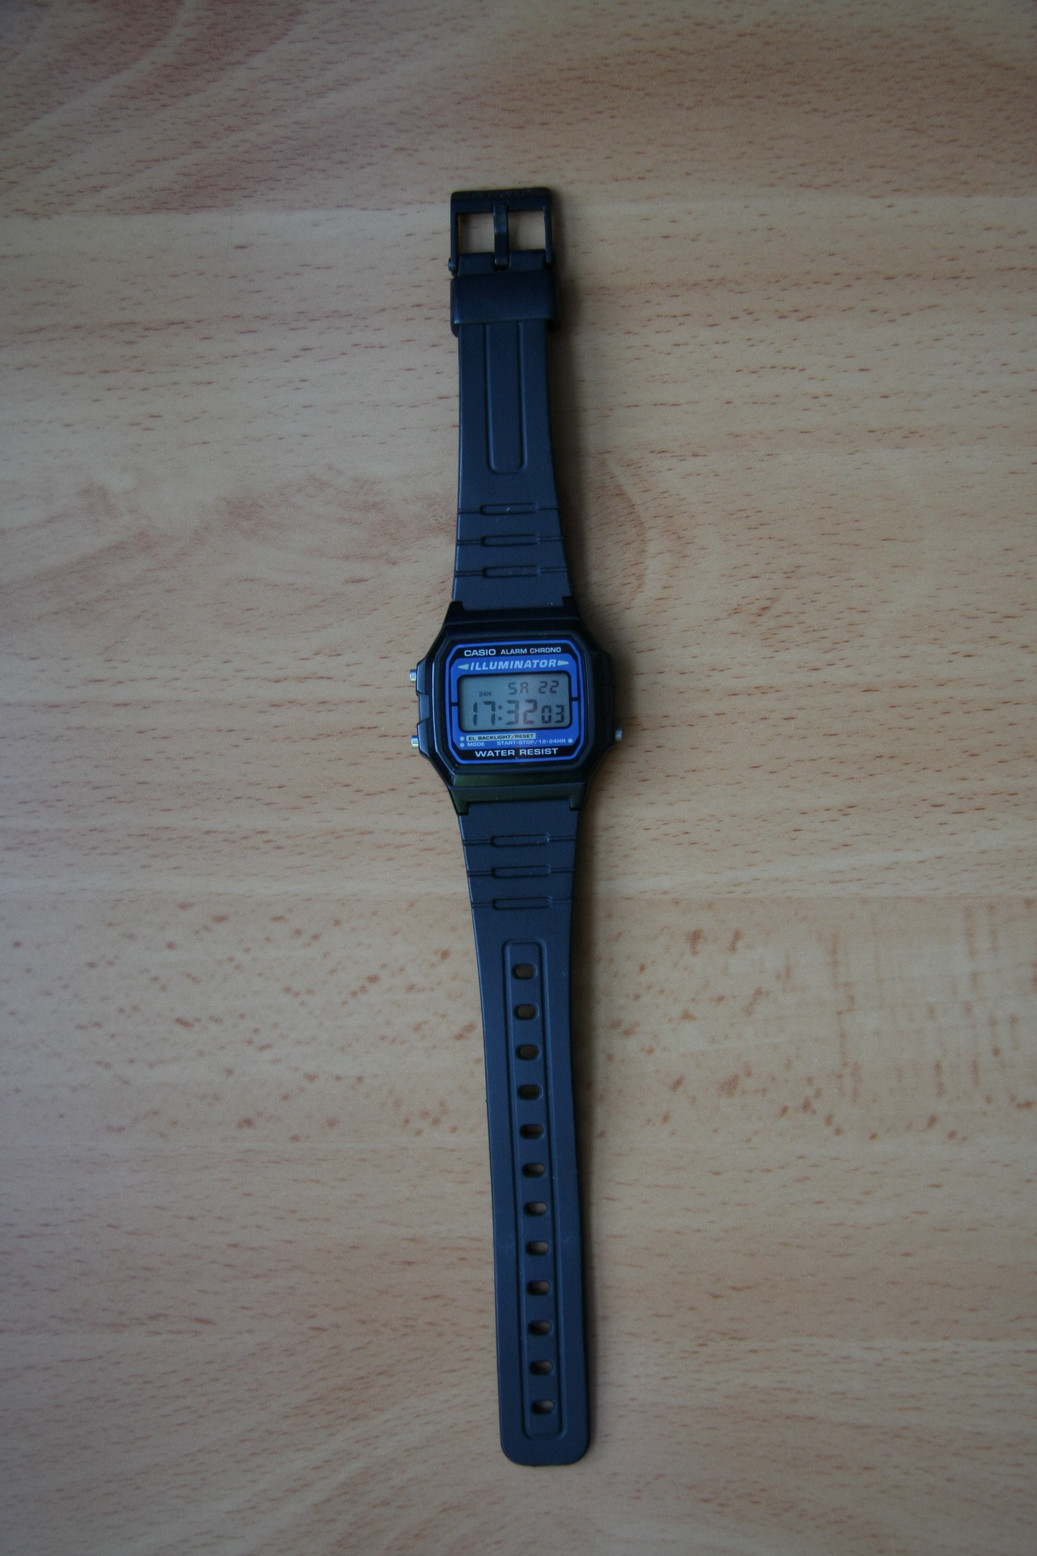 c25efd43e Casio F-105 watch. Classic in form and function.